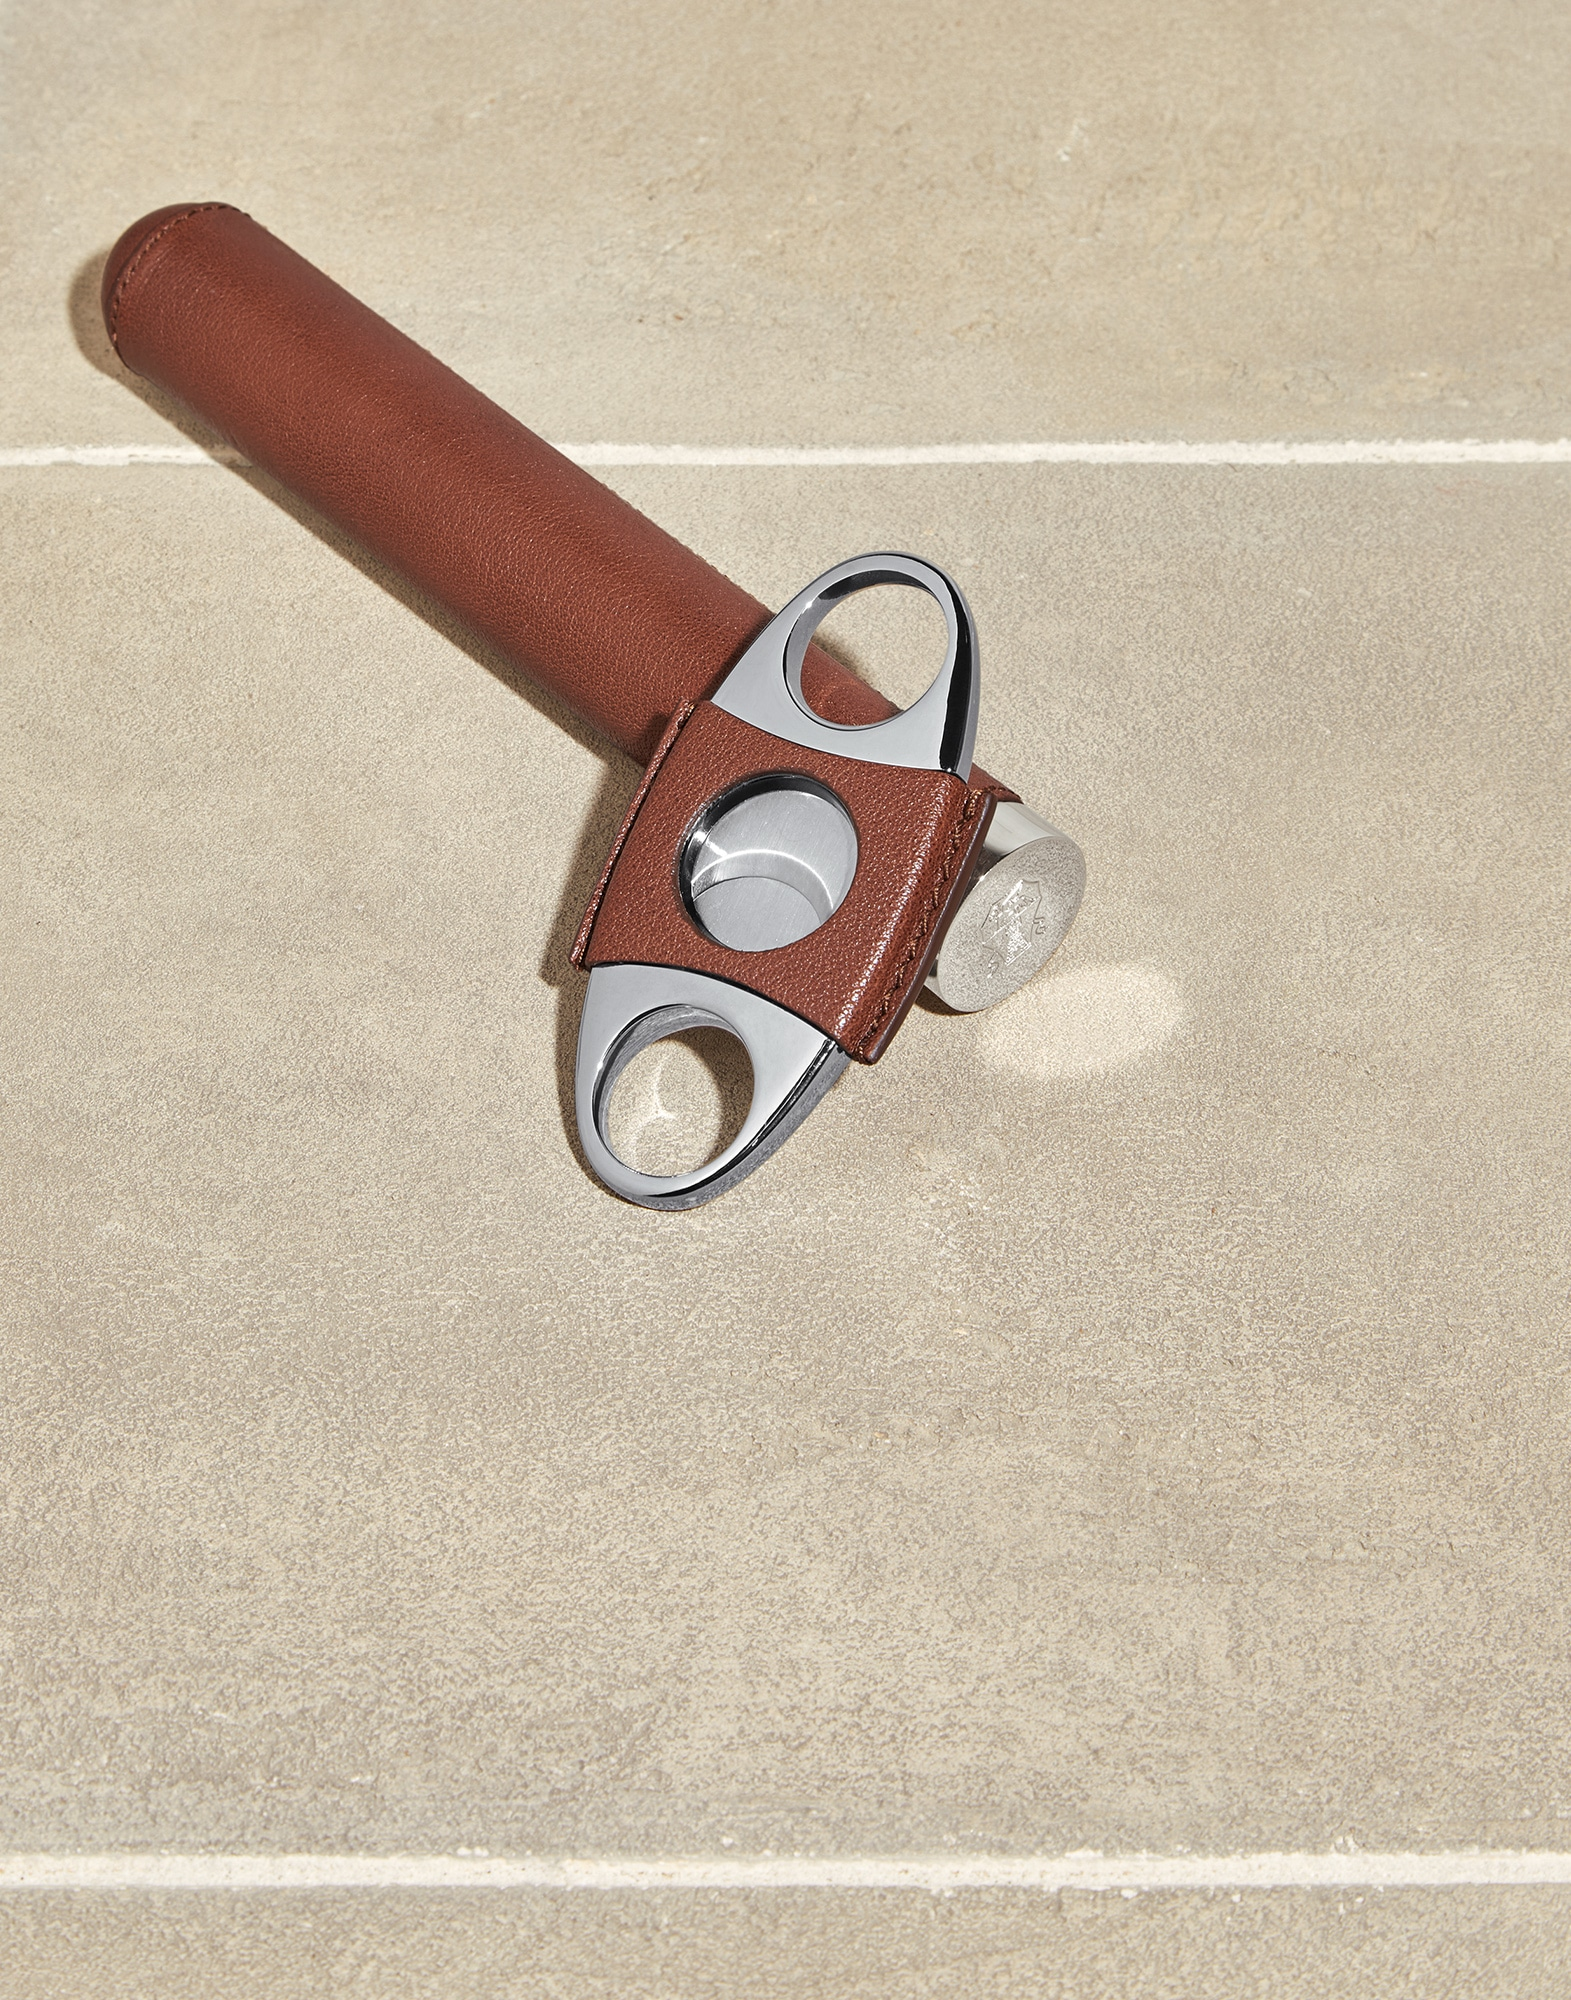 Cigar Cutter - Full look